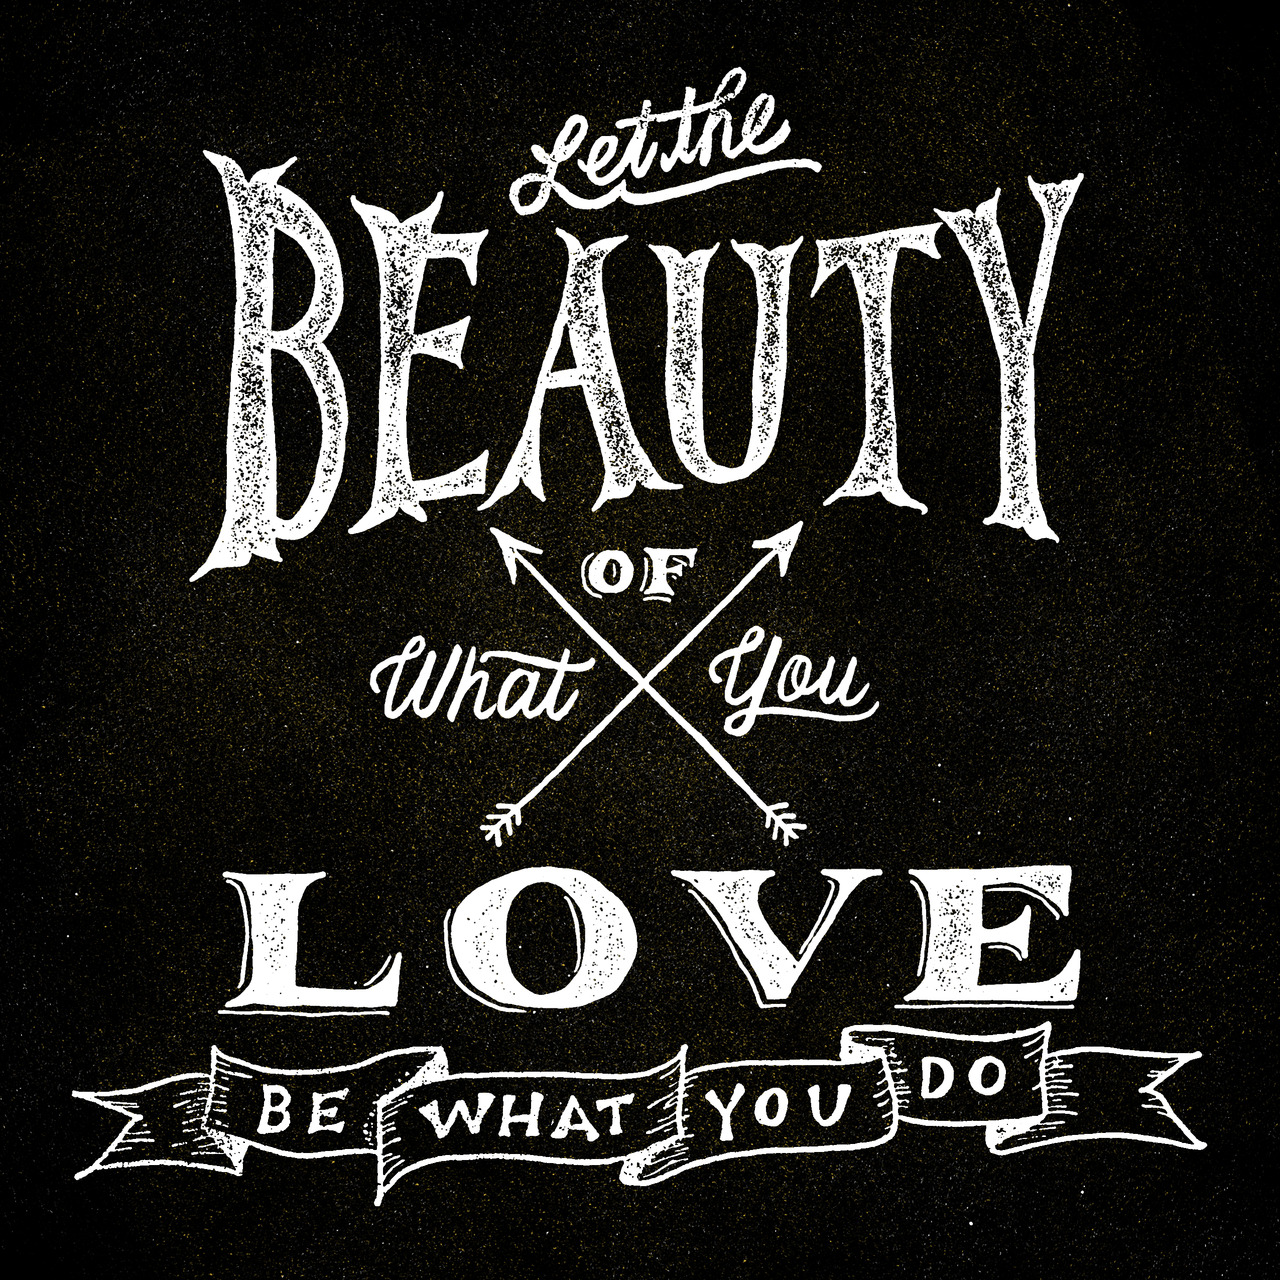 tumblr mqxlsd5ddb1qkxrtro1 12801 20 Inspiring and Beautiful Typographic Quotes